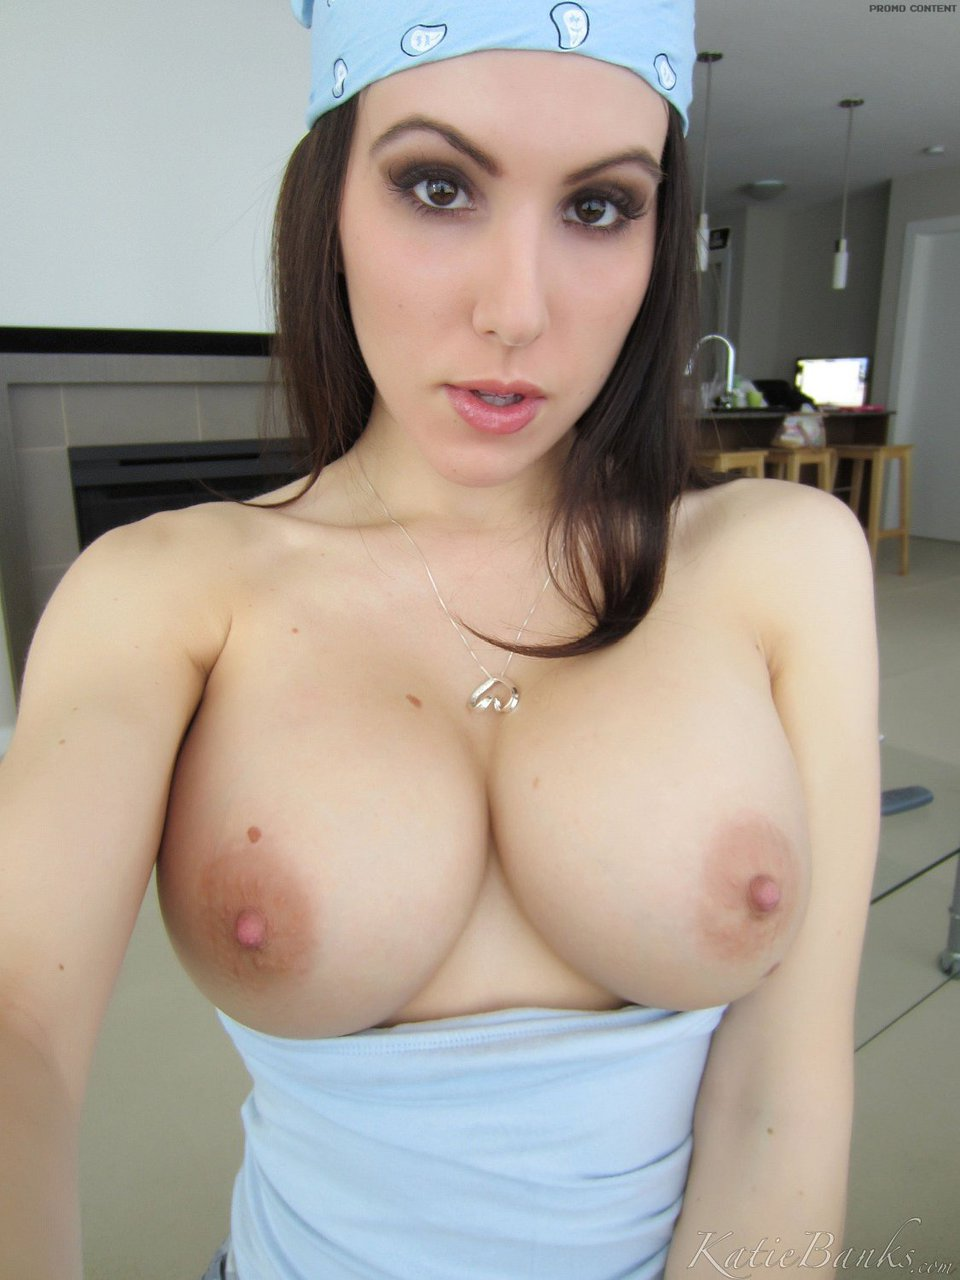 Most fucked ass in porn